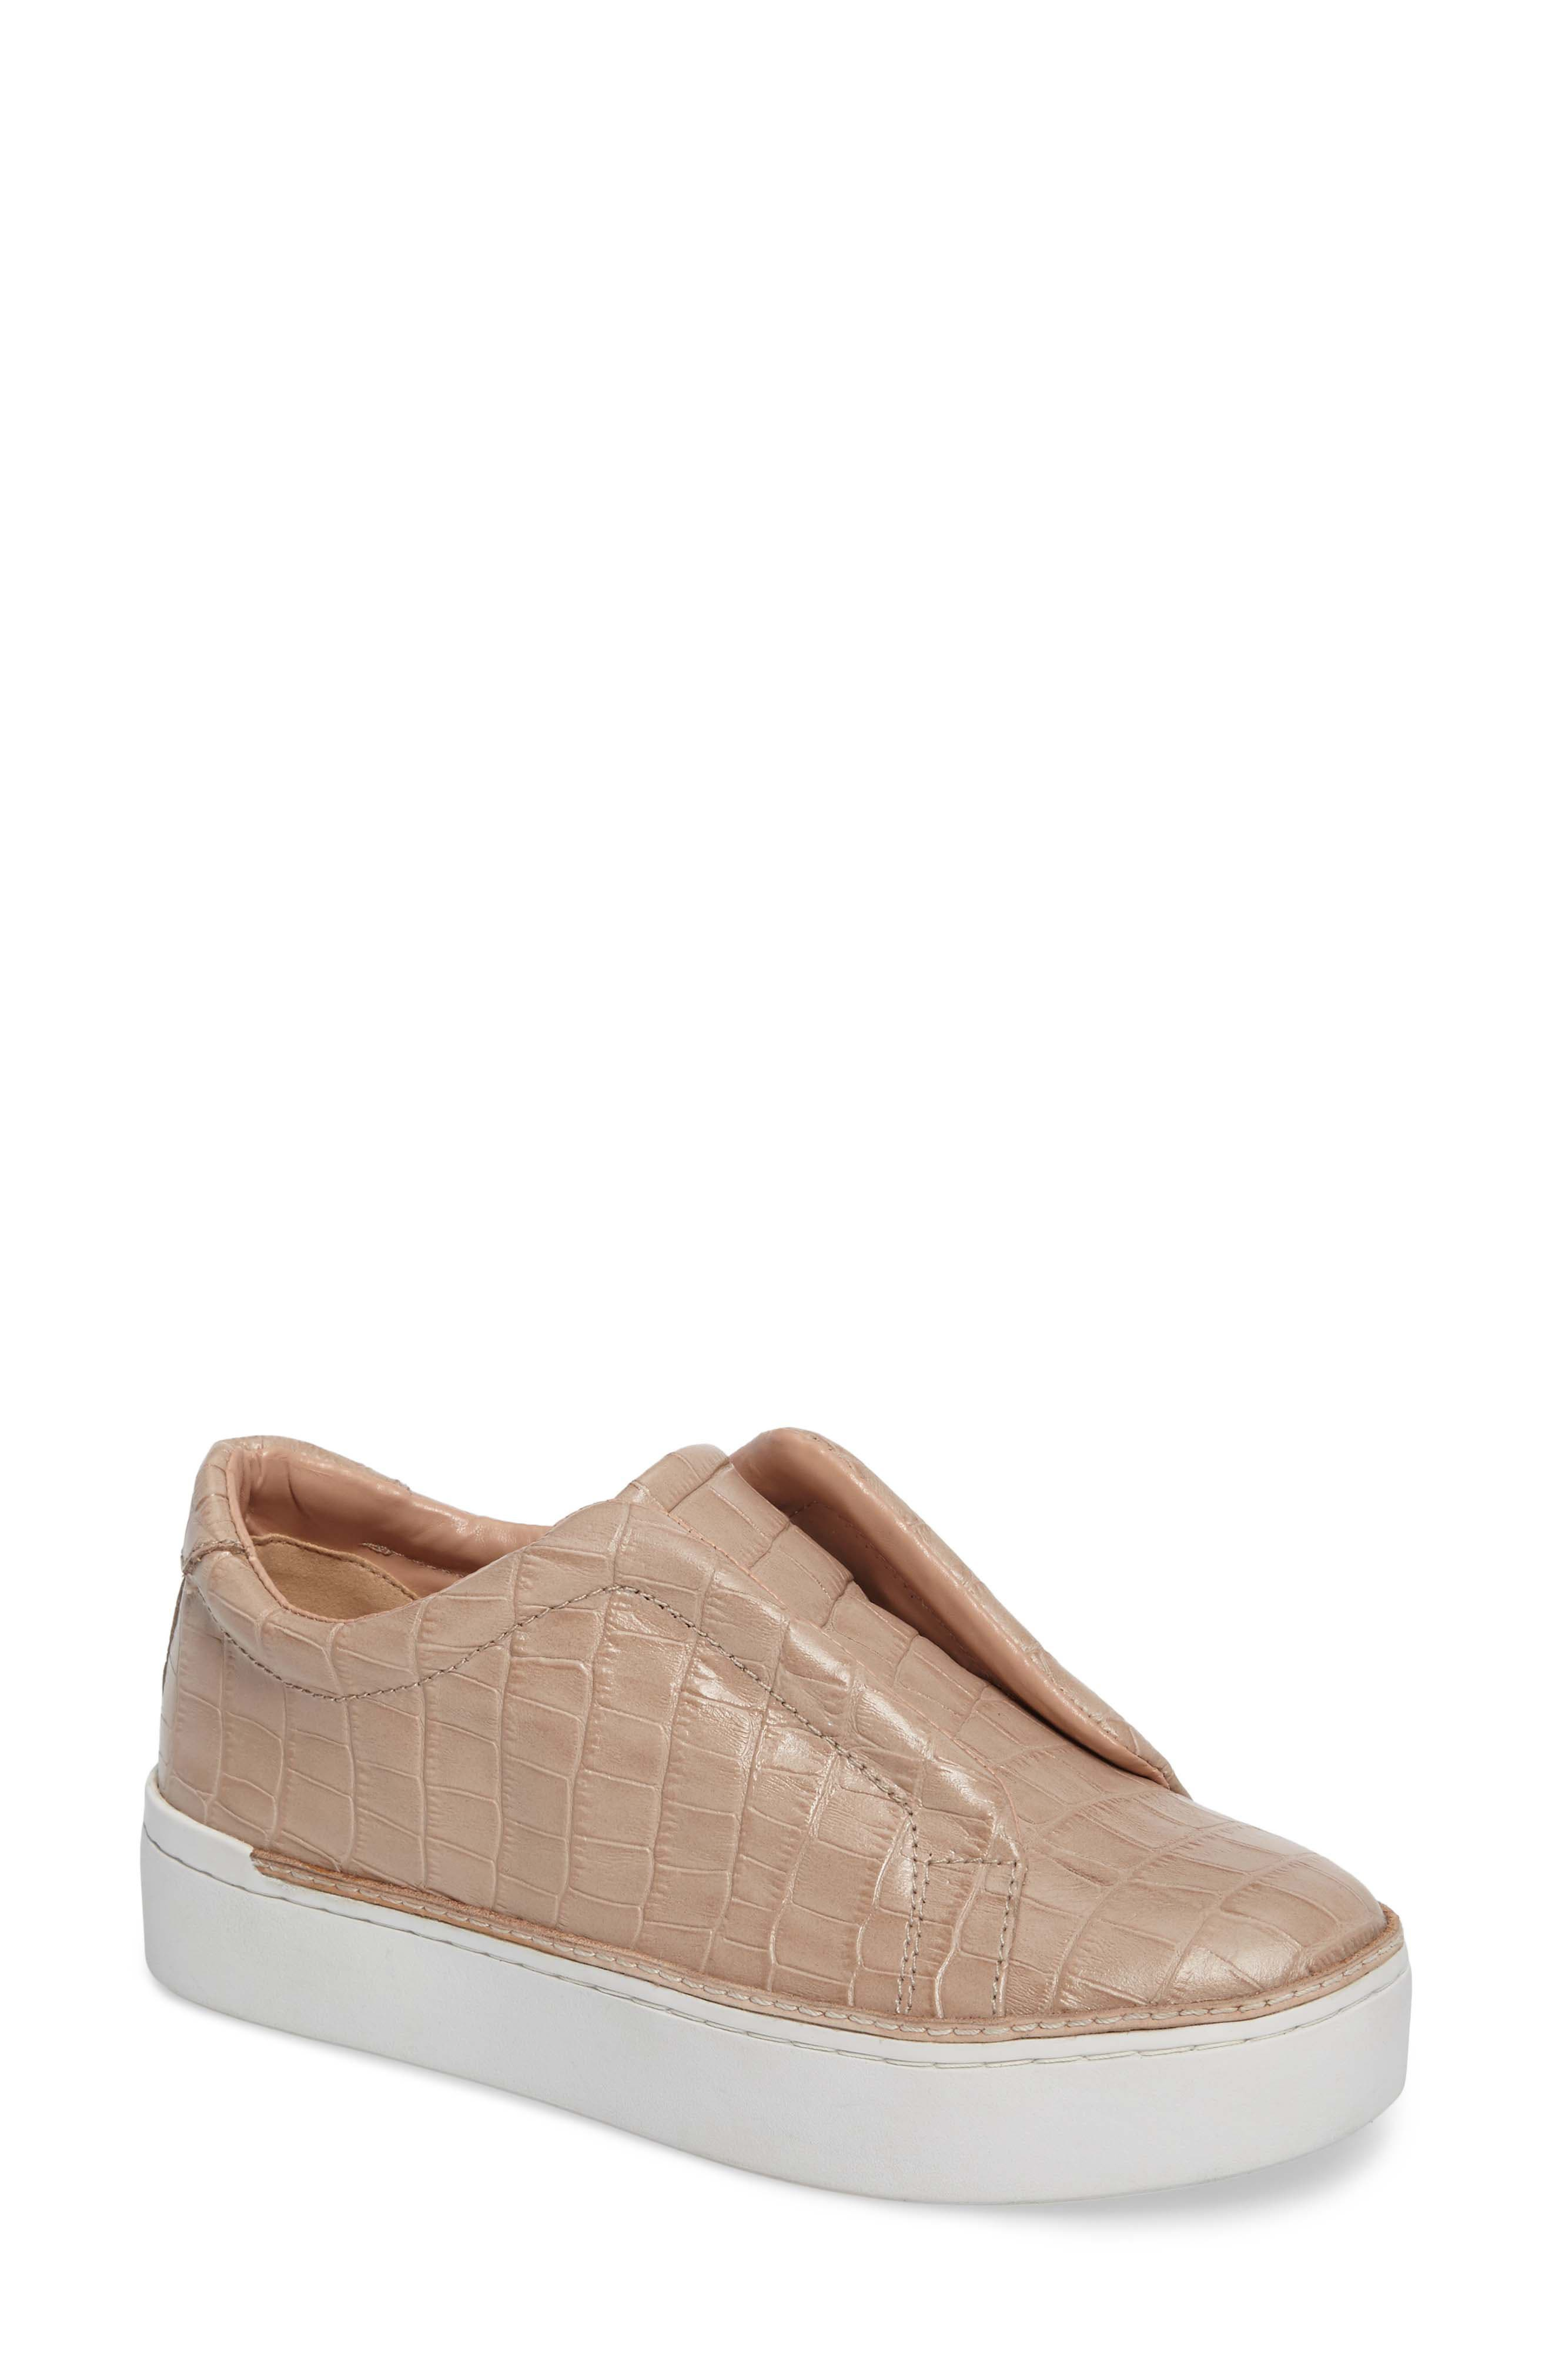 Main Image - M4D3 Super Slip-On Sneaker (Women)